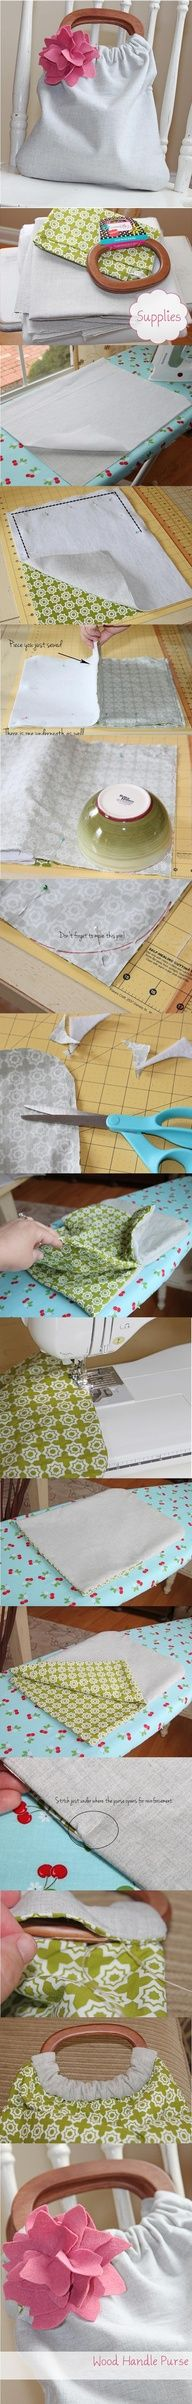 DIY: Bag Made With Wooden Handles And Fabric. Easy, clear instructions with great pics to make this teen project an easy DIY purse that can be styled to a one of a kind fashion statement. Fabric Crafts, Sewing Crafts, Sewing Projects, Diy Crafts, Sewing Diy, Diy Handbag, Diy Purse, Diy Bag Making, Sewing Tutorials